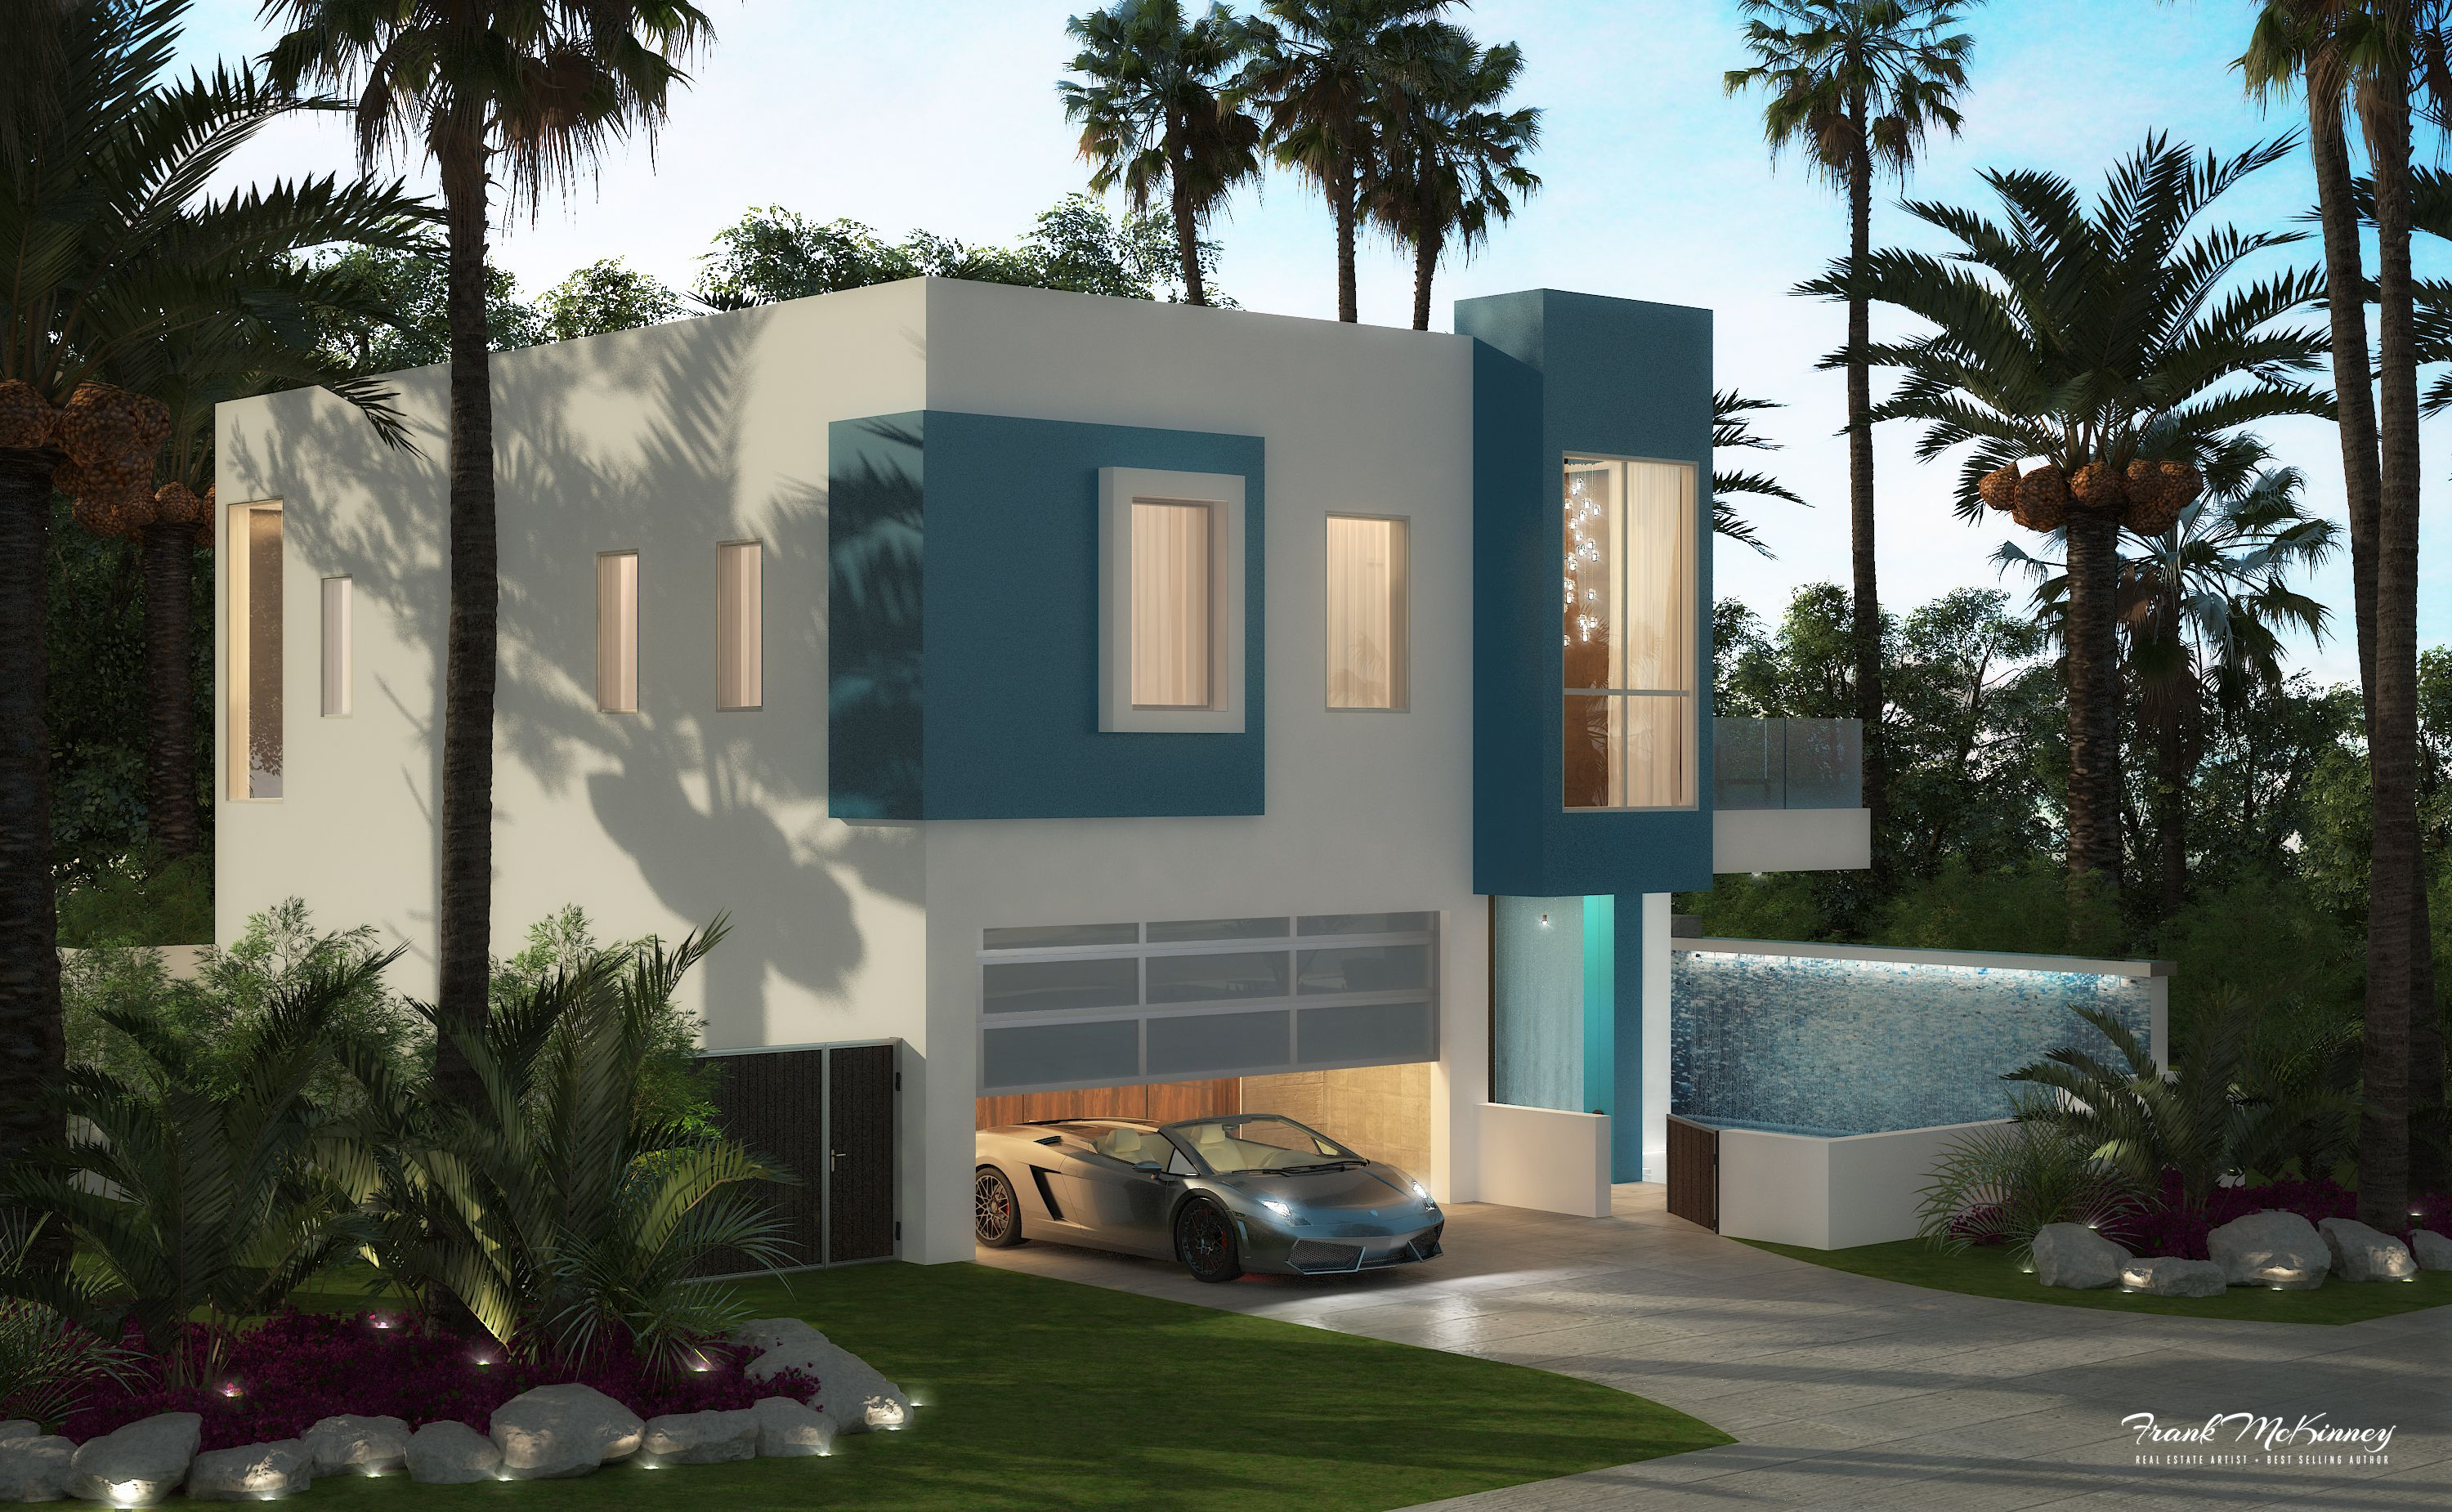 Are \'Micro-Mansions\' the Next Big Thing? | Design & Architecture ...